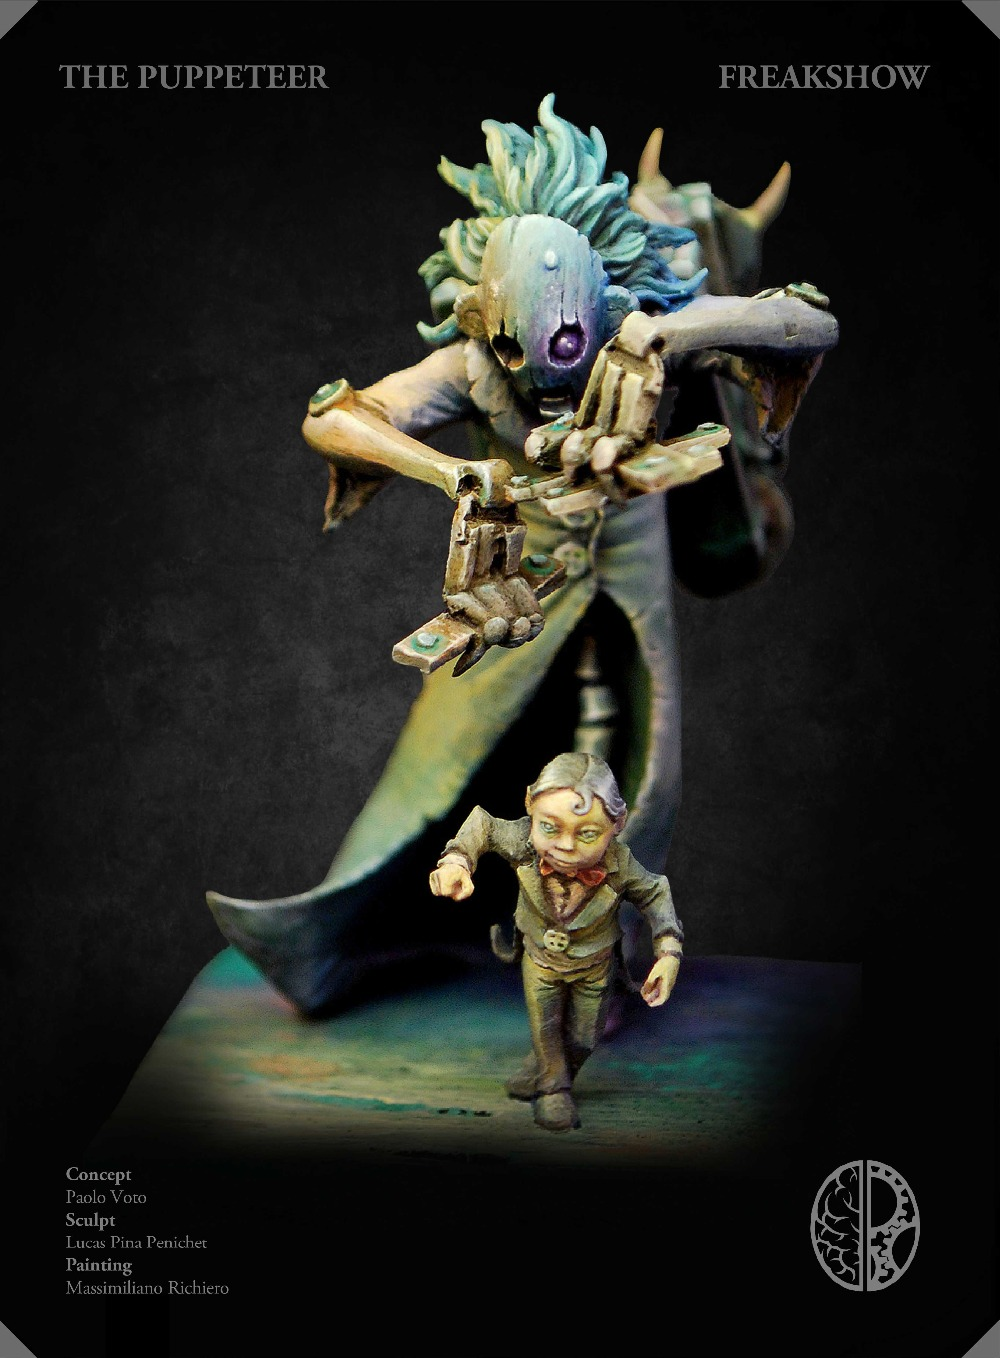 Loong Way Miniatures] Kimera Models The Puppeteer 54mm Resin